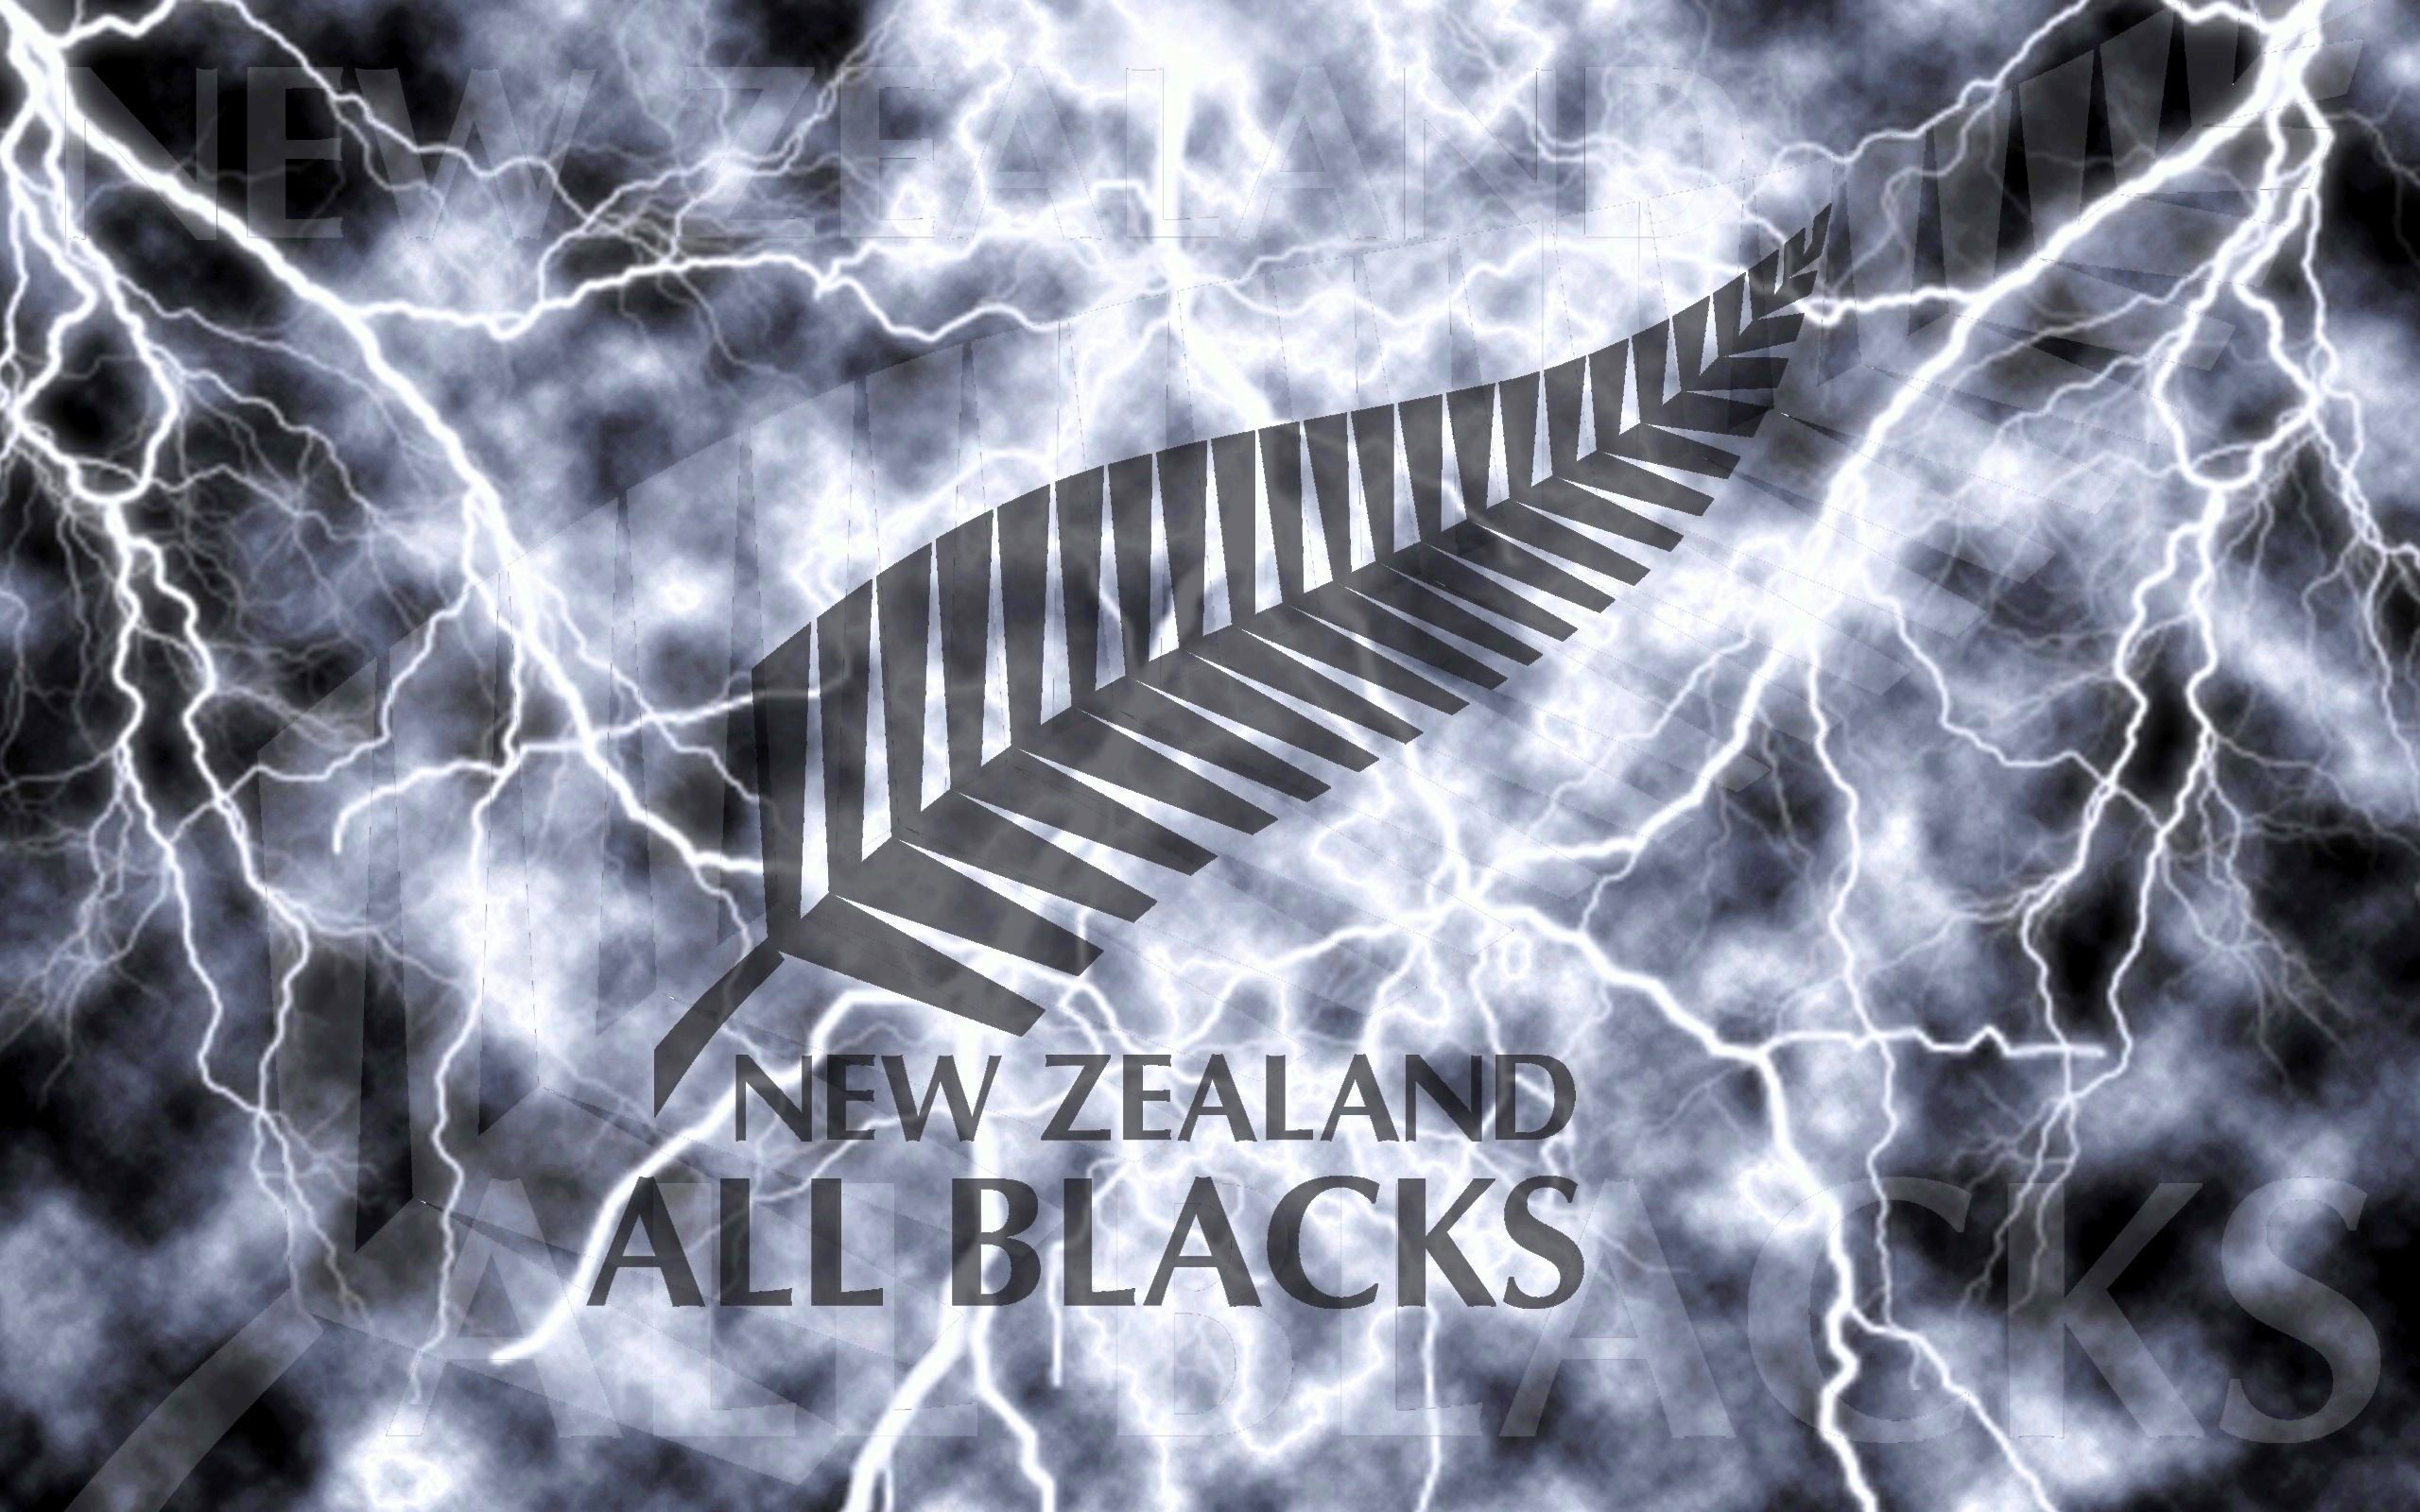 New Zealand All Blacks Lightning Wallpaper By Sunnyboiiii All Blacks New Zealand Black Wallpaper